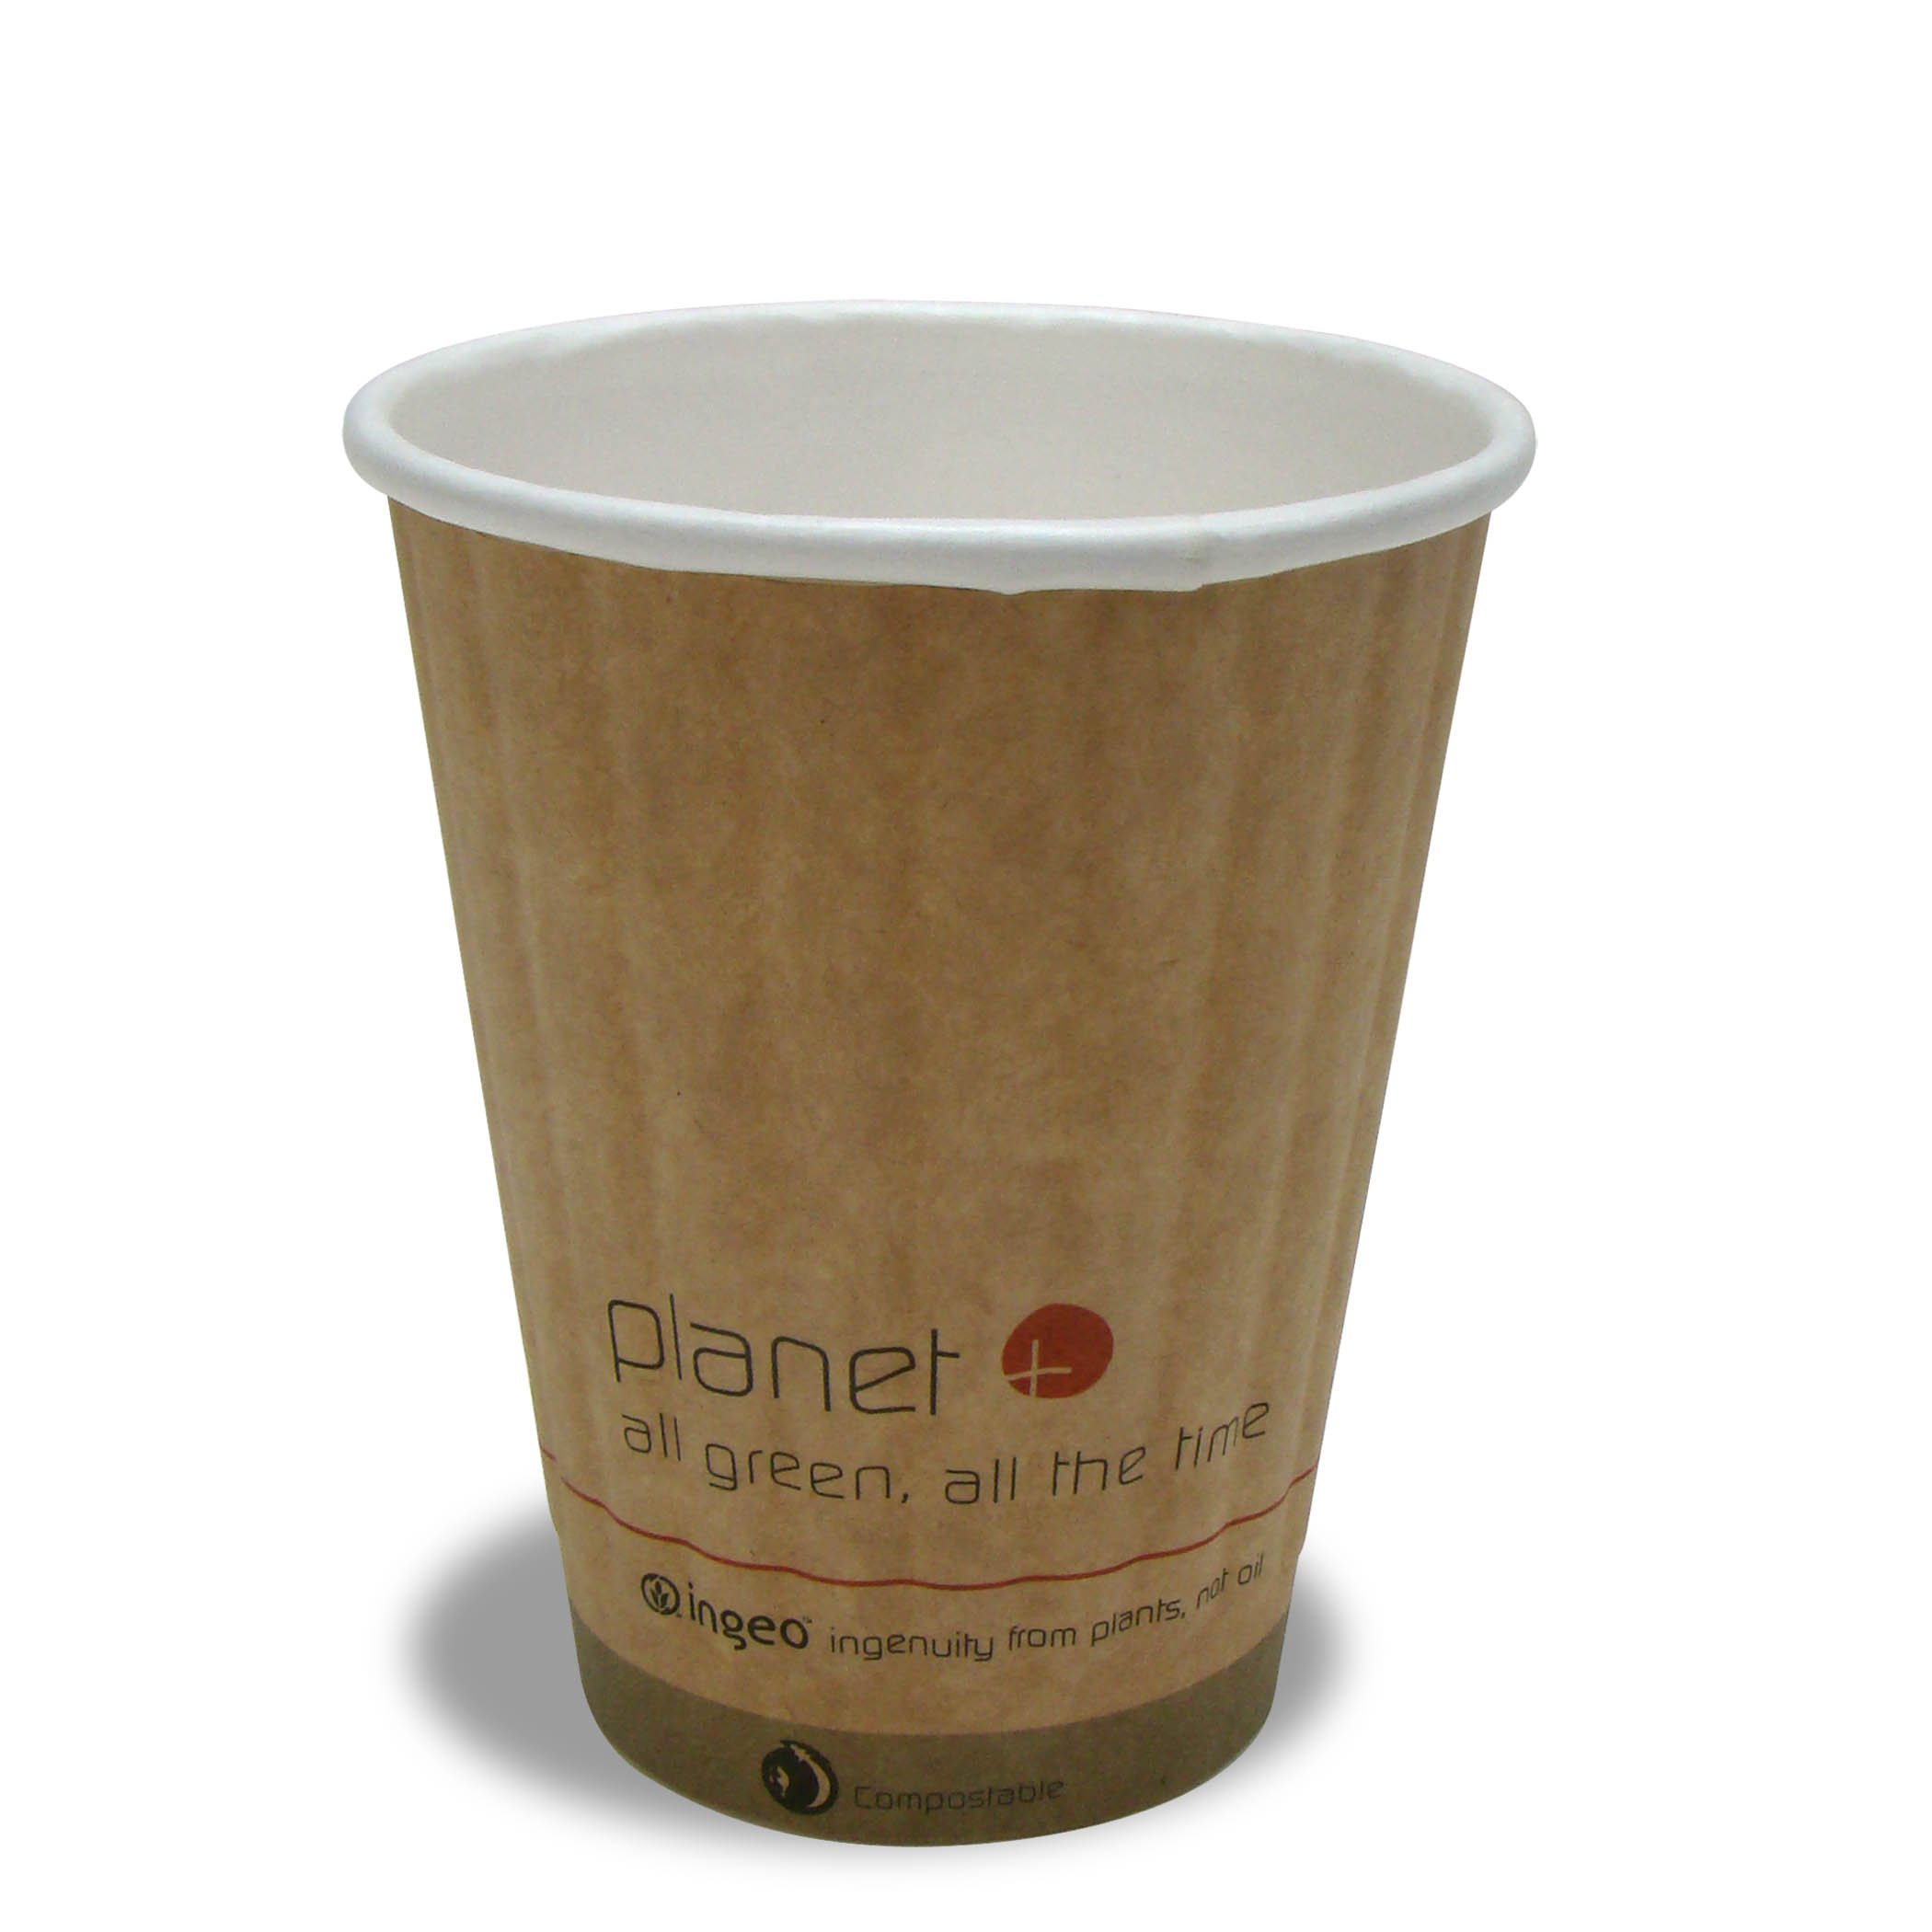 Planet + 100% Compostable PLA Laminated Double Wall Insulated Hot Cup, 8-Ounce, 1000-Count Case